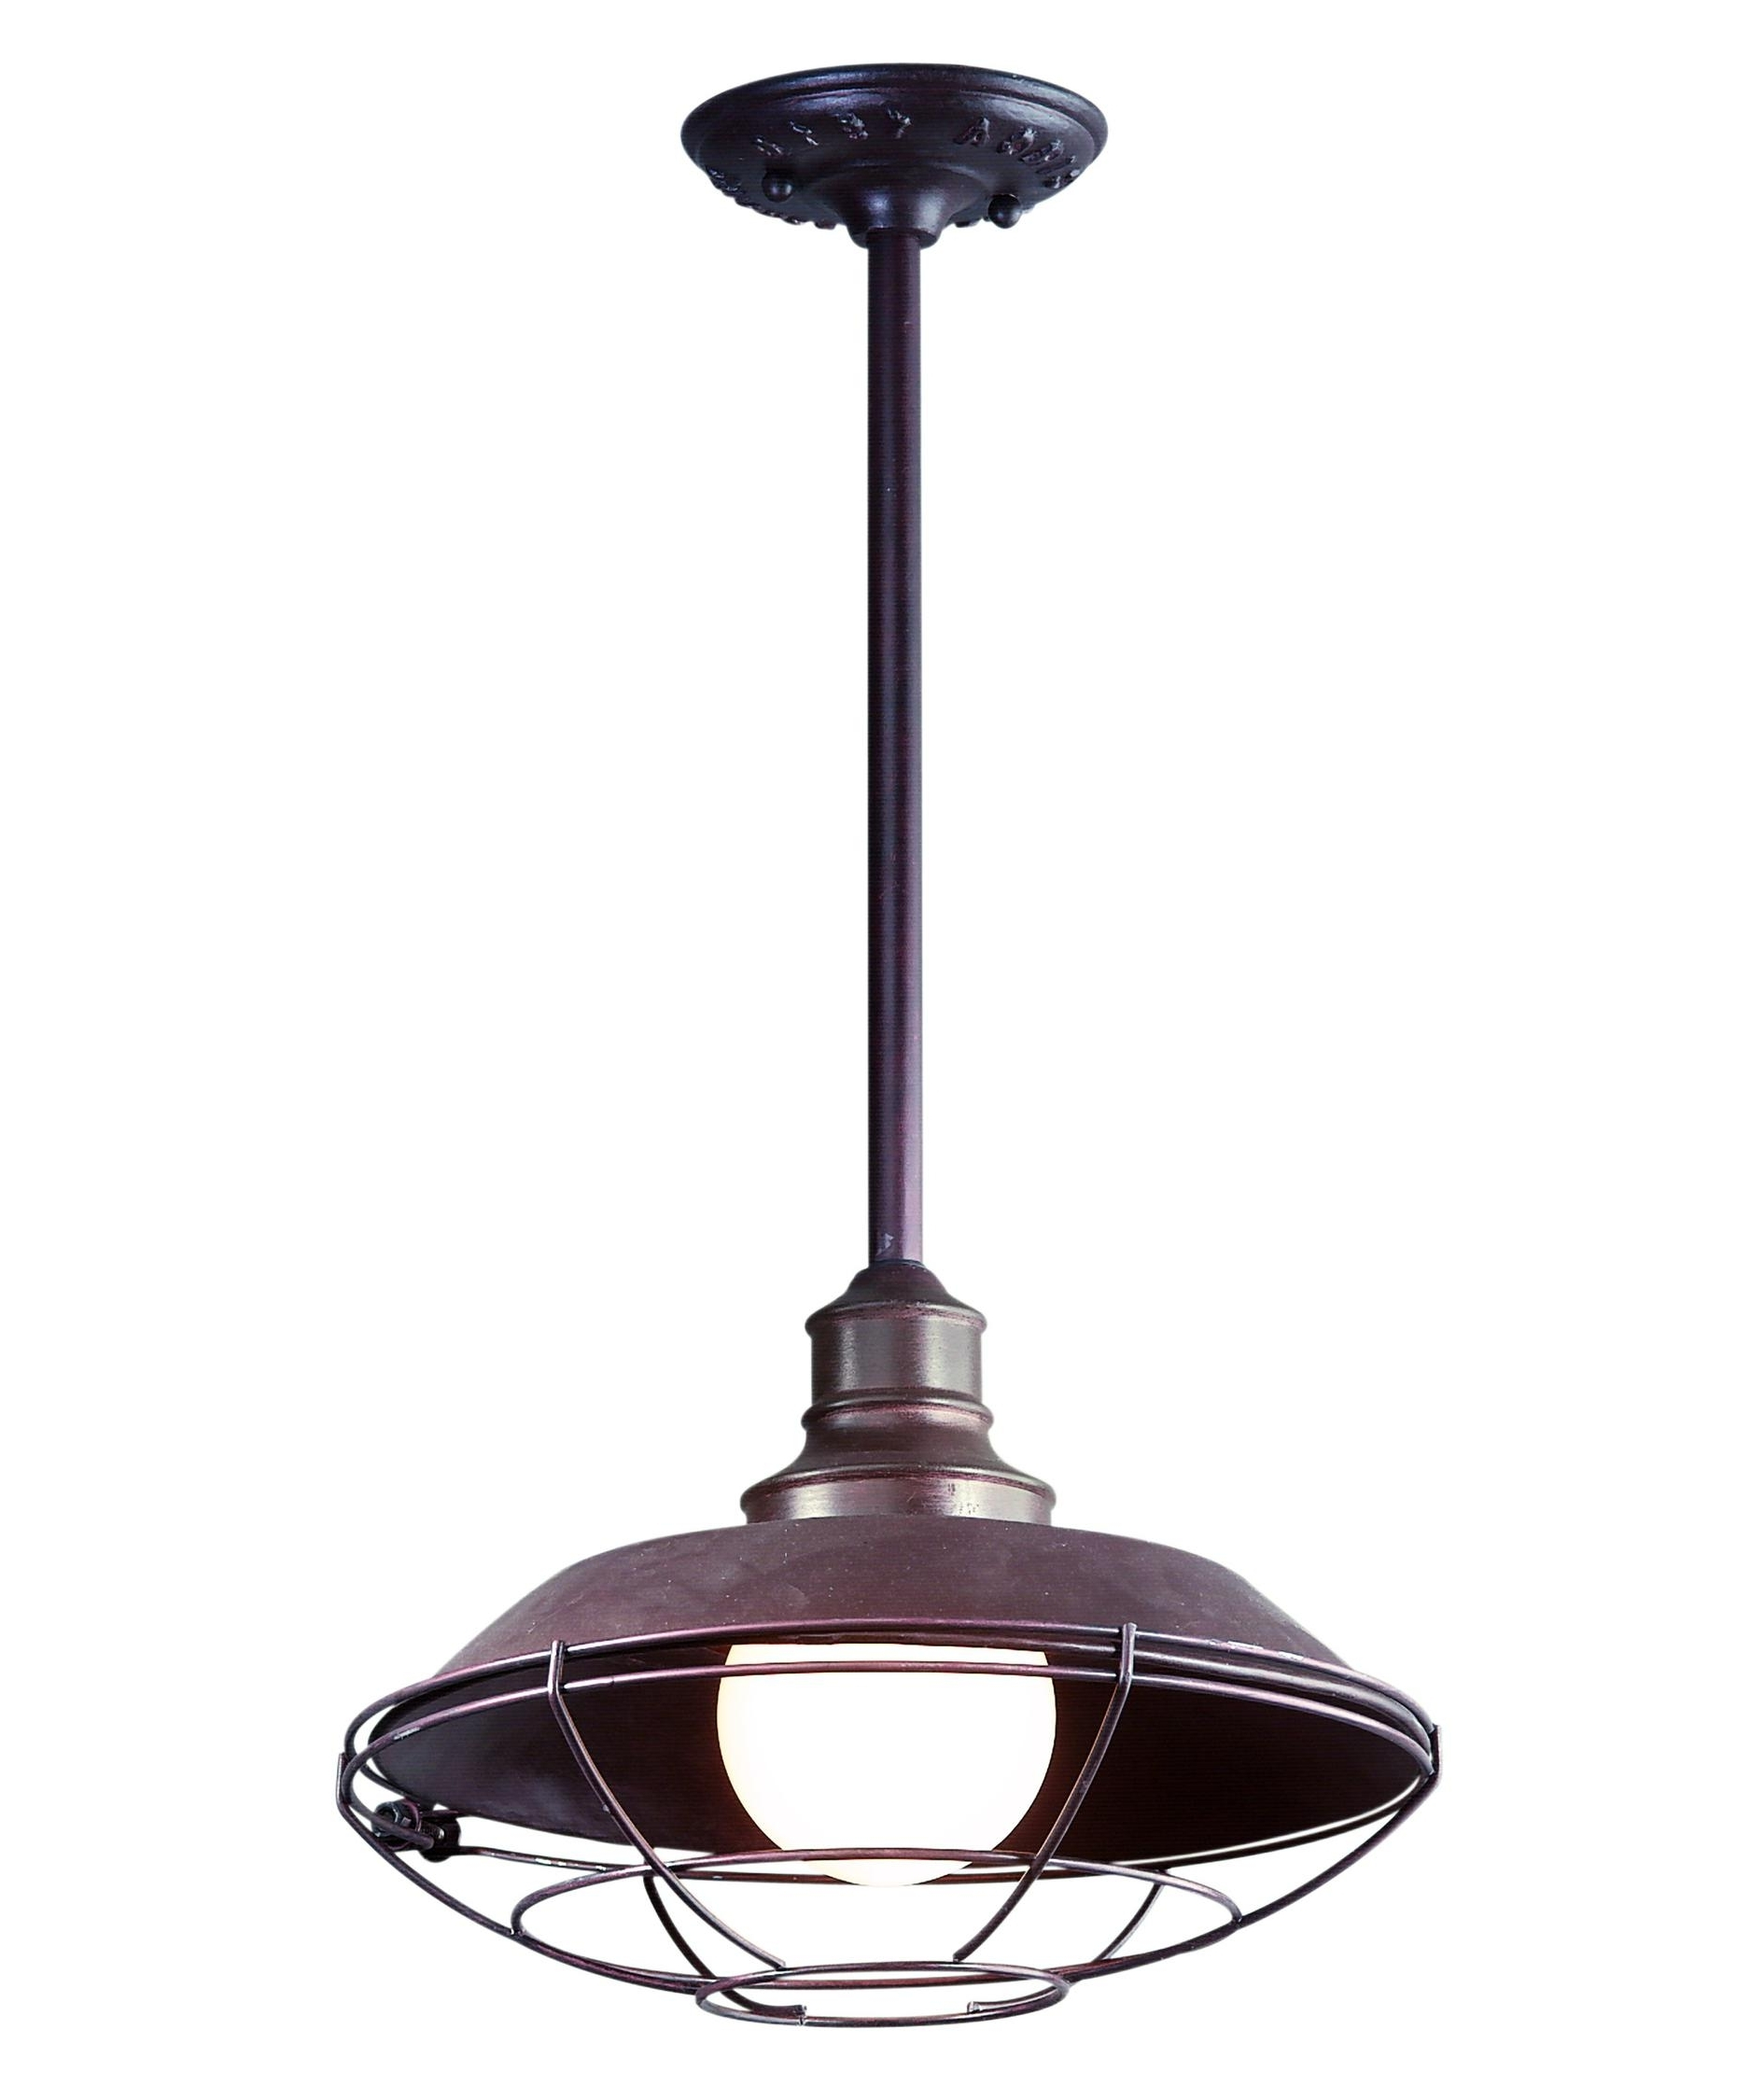 Troy Lighting F9273 Circa 1910 12 Inch Wide 1 Light Outdoor Hanging With Regard To Popular Outdoor Hanging Ceiling Lights (View 4 of 20)